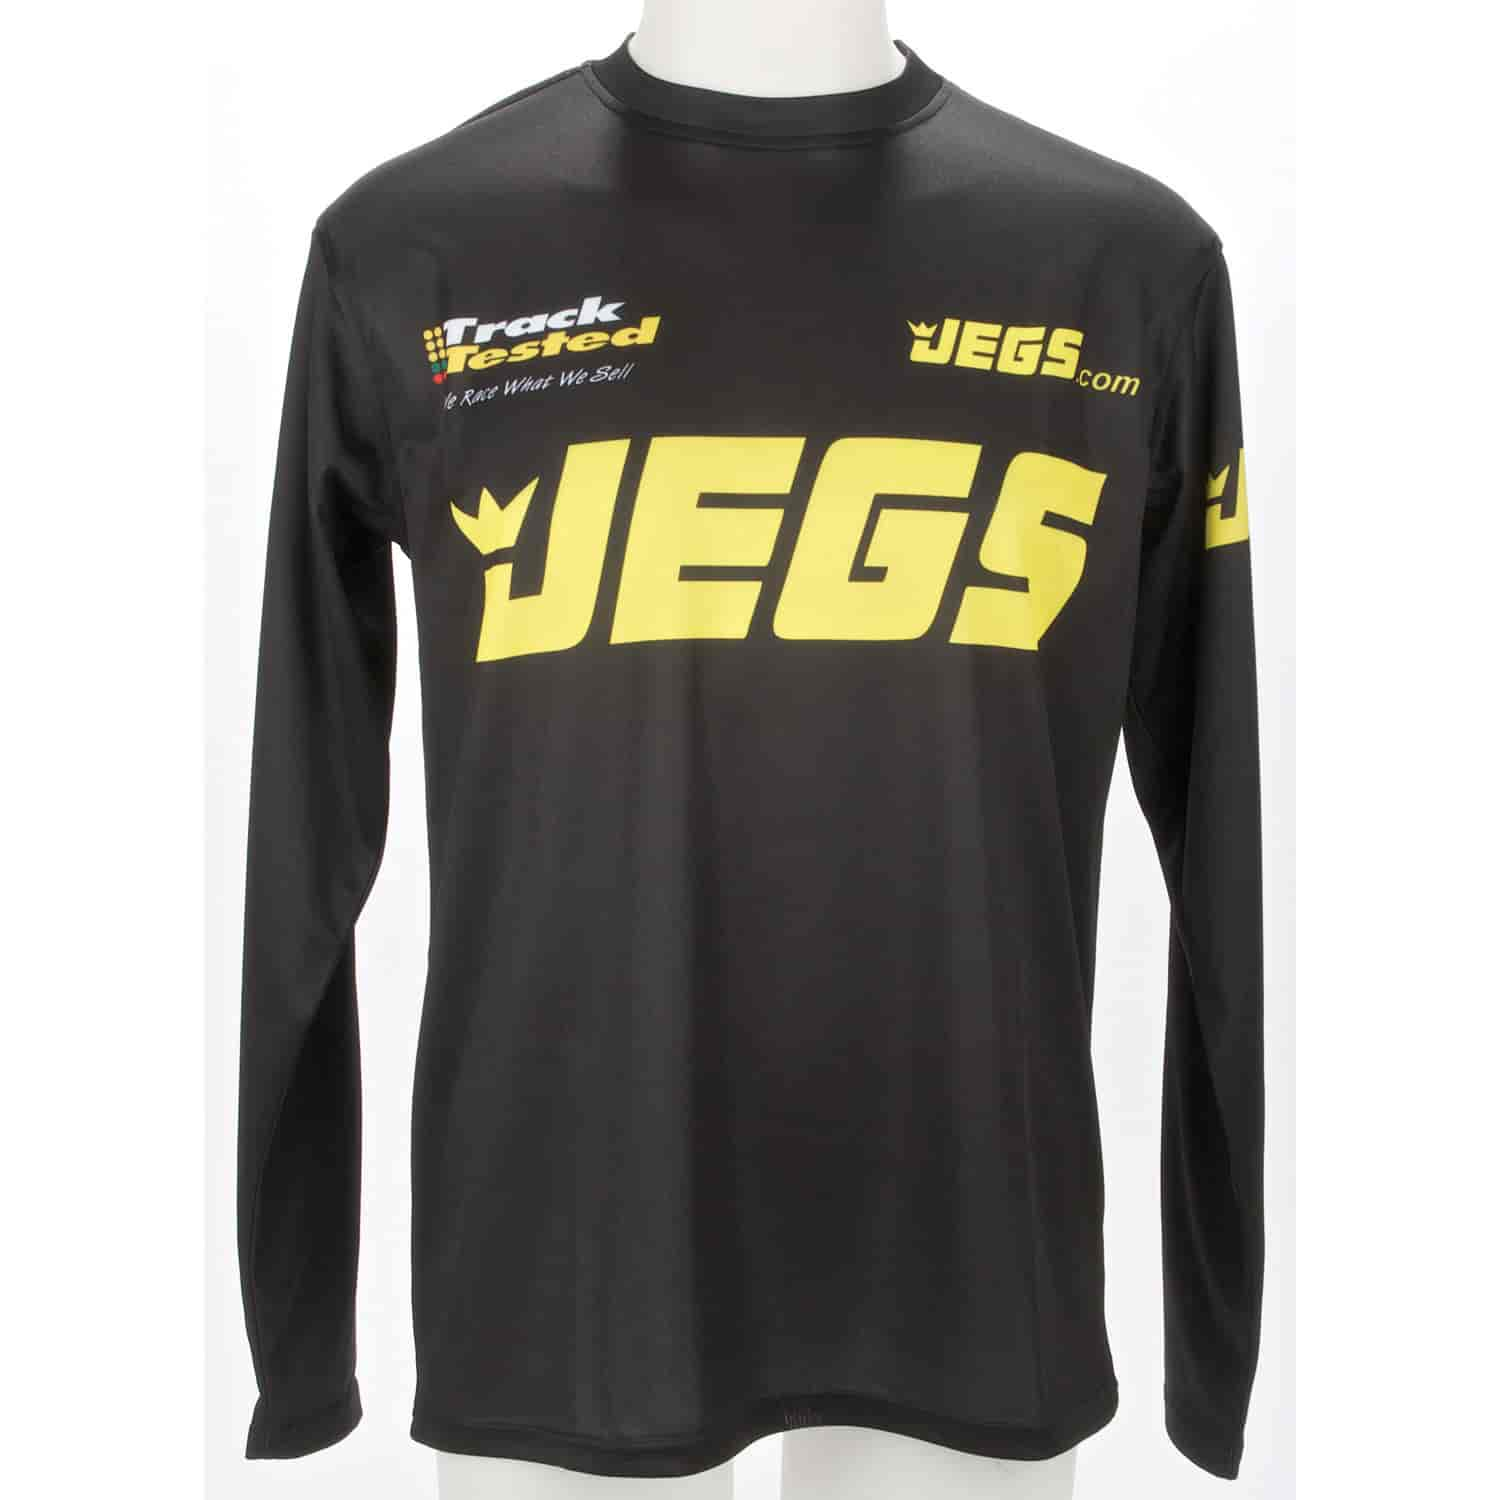 JEGS 7703 - JEGS Race Team Sublimated Long Sleeve T-Shirt